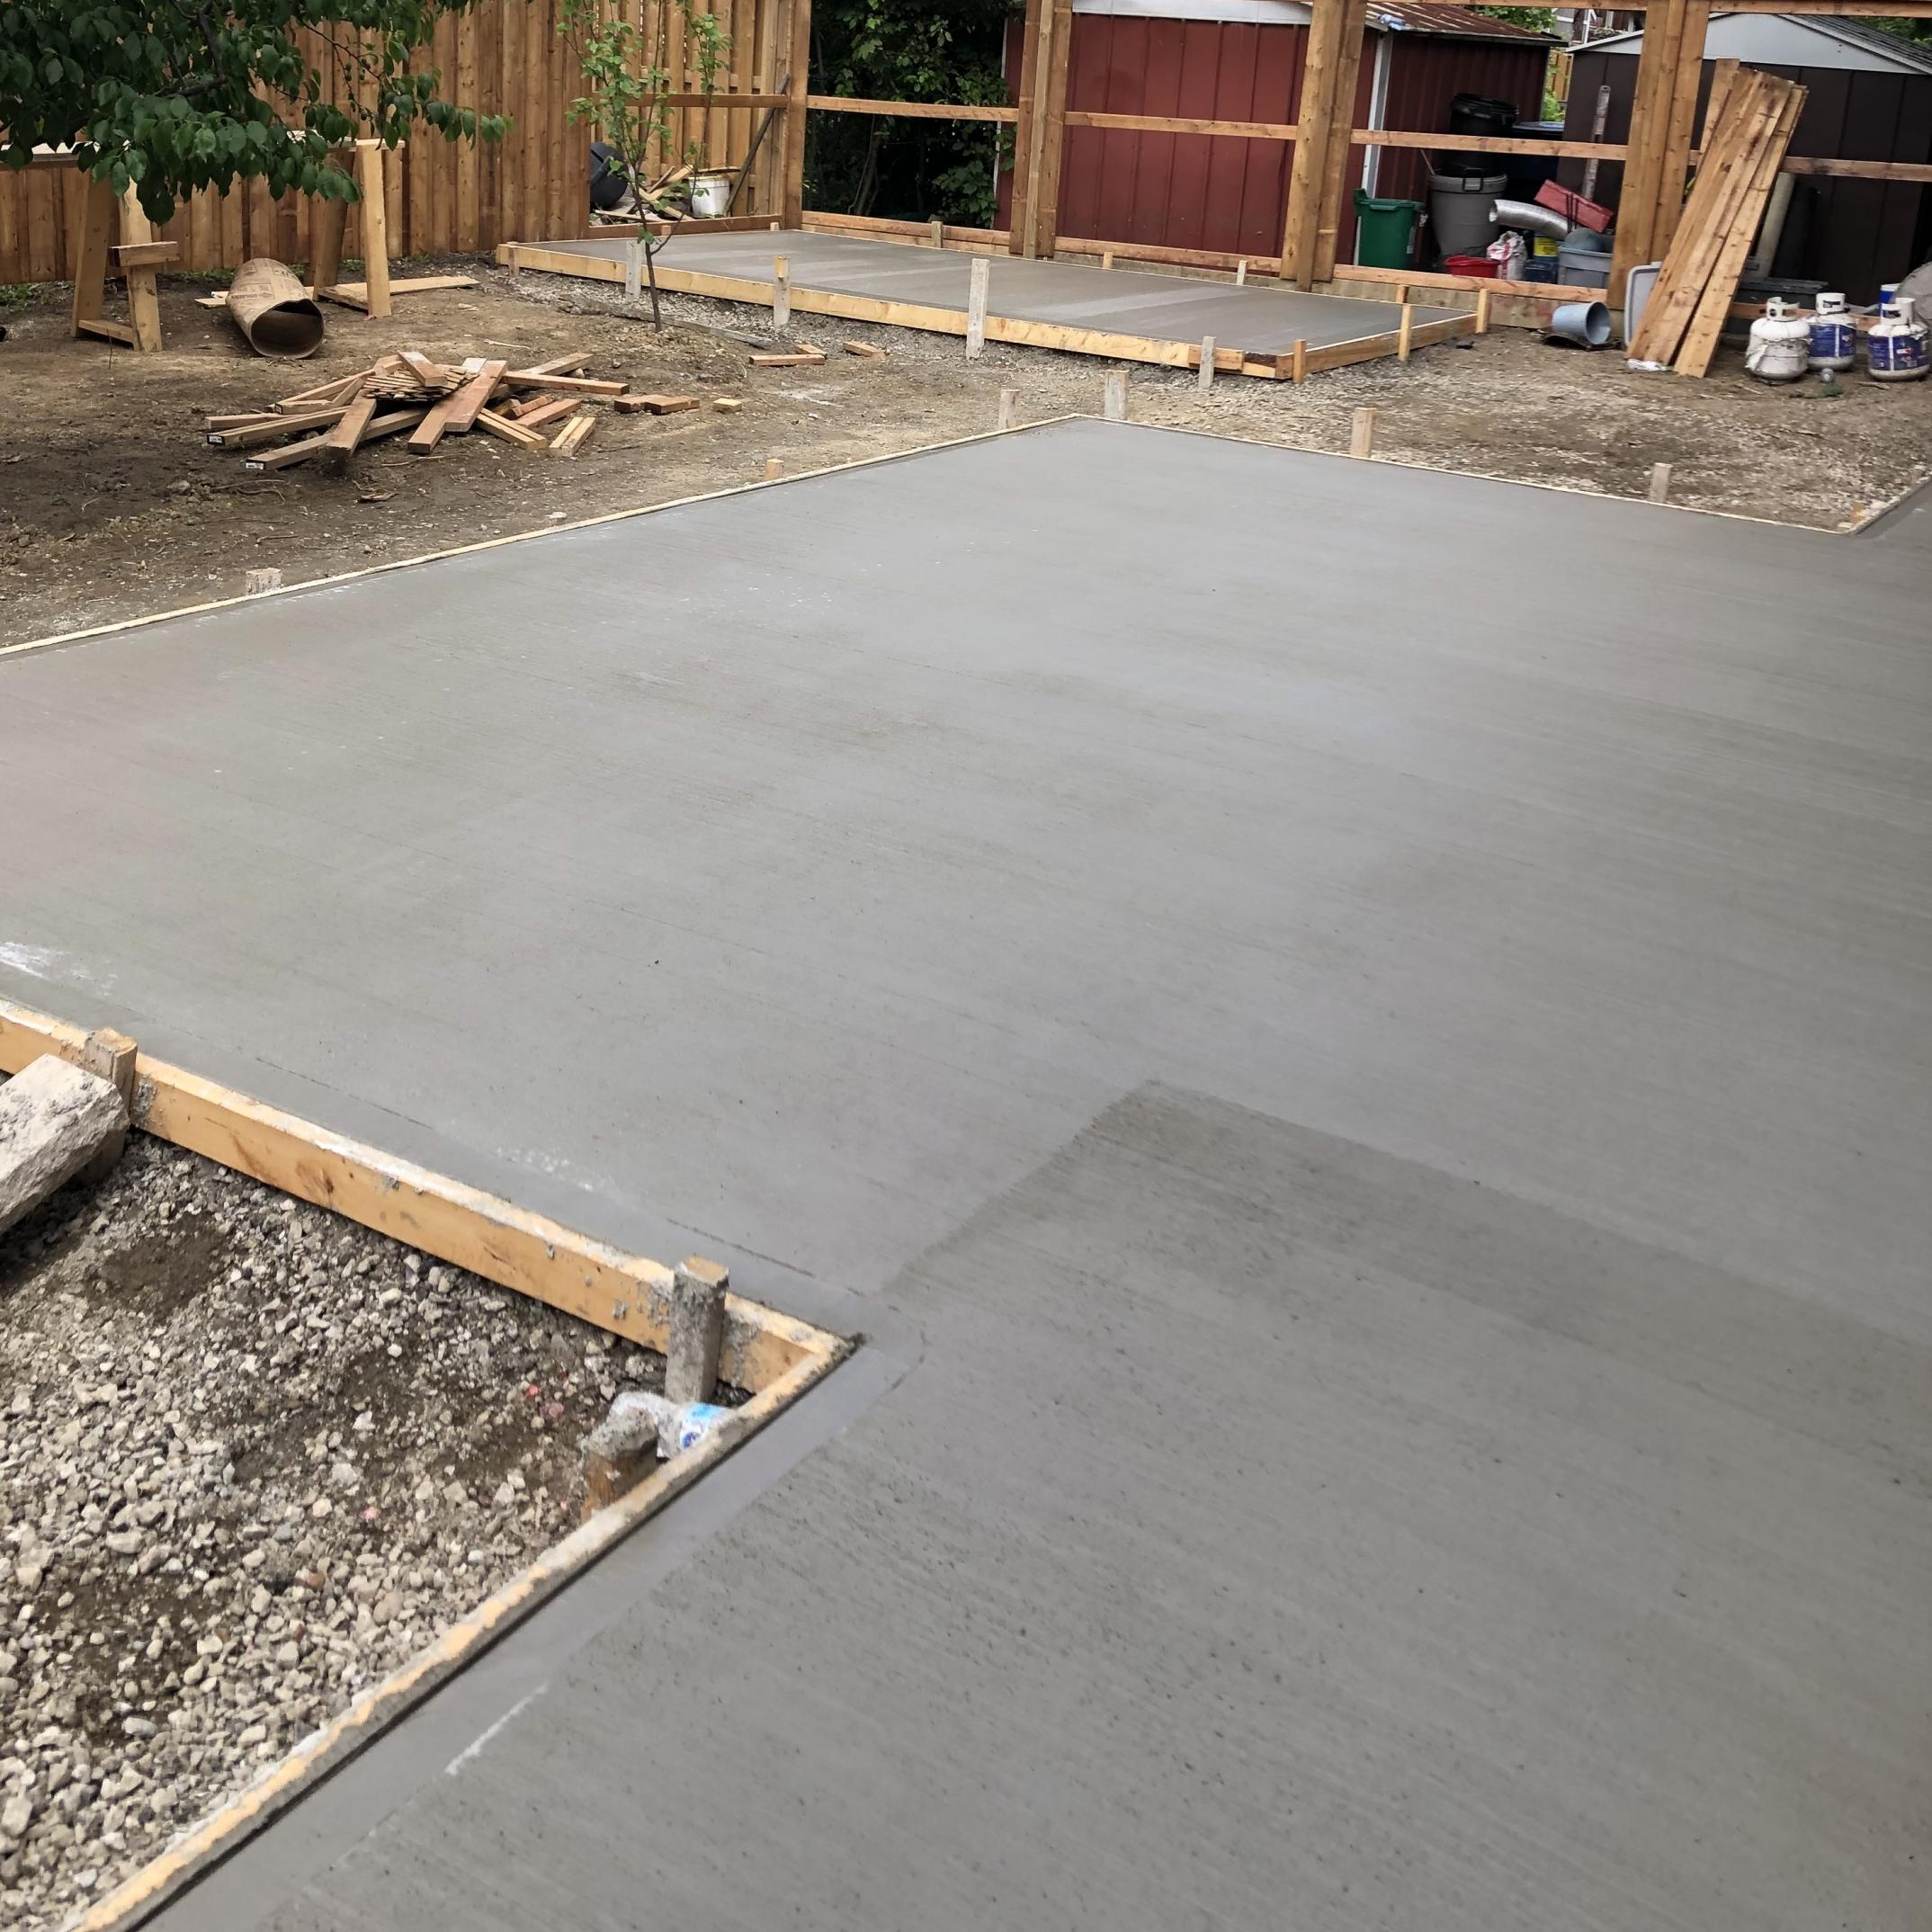 CONCRETE BACK PATIO WITH SHED FOUNDATION